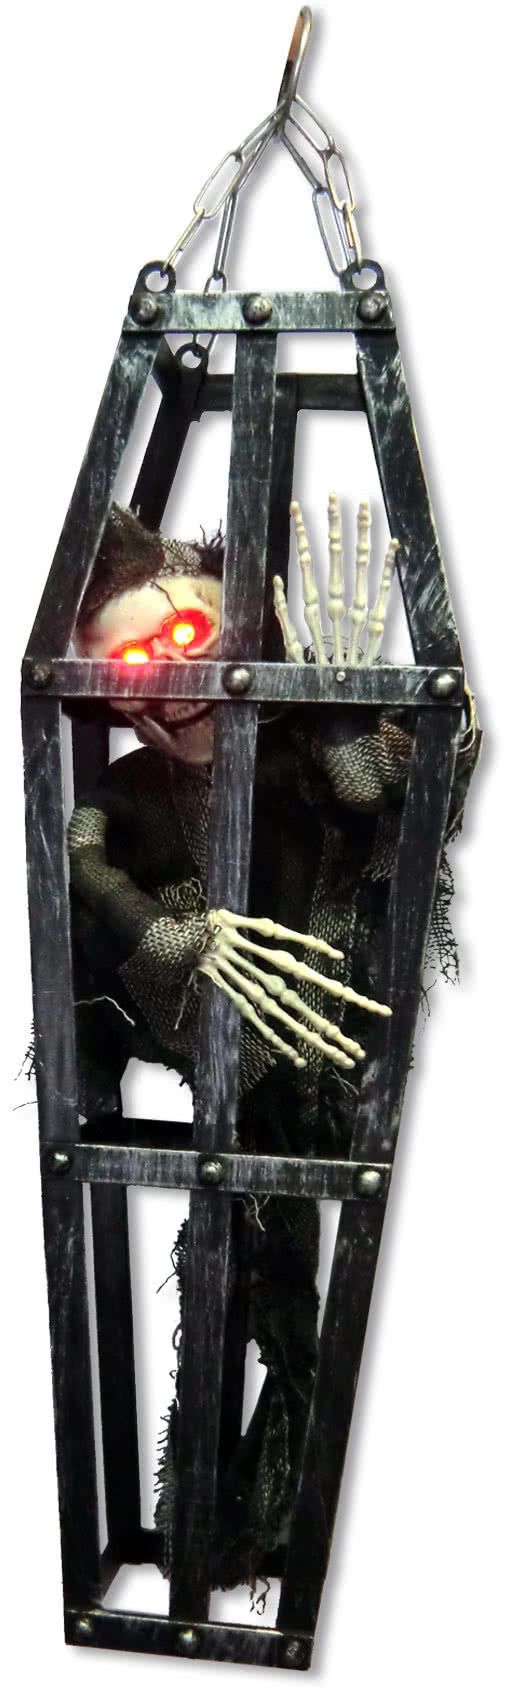 decoration skeleton in the cage with led eyes halloween hanging decoration horror. Black Bedroom Furniture Sets. Home Design Ideas